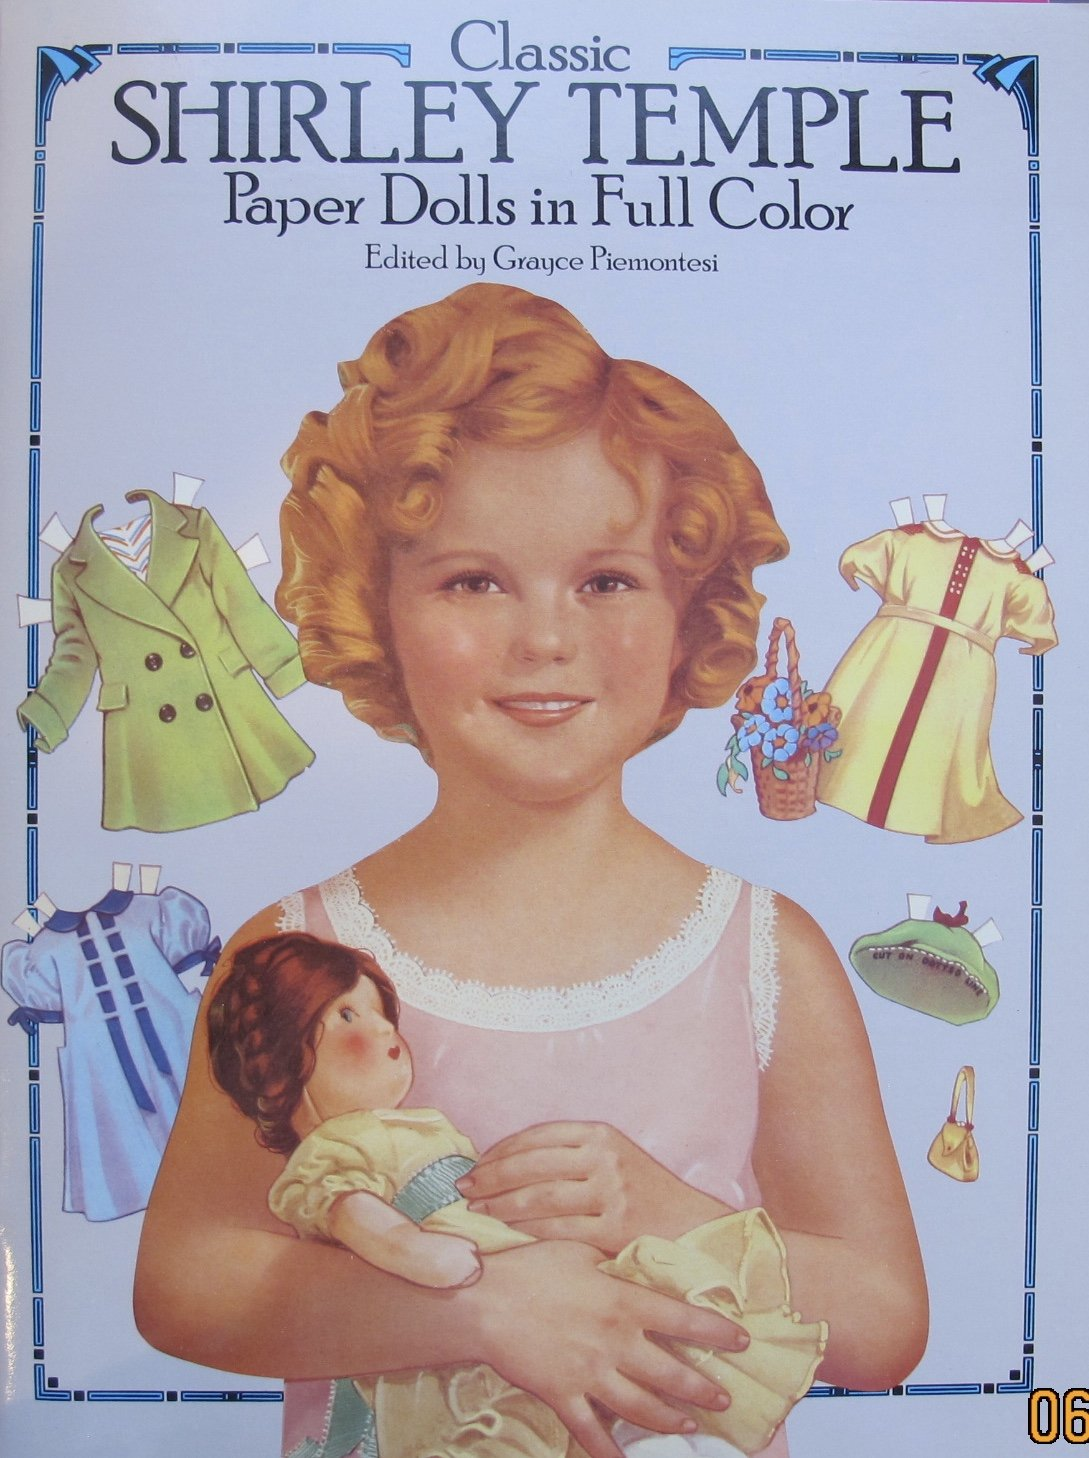 Classic SHIRLEY TEMPLE PAPER DOLLS in Full Color CUT OUT BOOK (UNCUT) w CARD STOCK 'Paper' DOLLS & ACCESSORIES (1986 Dover)